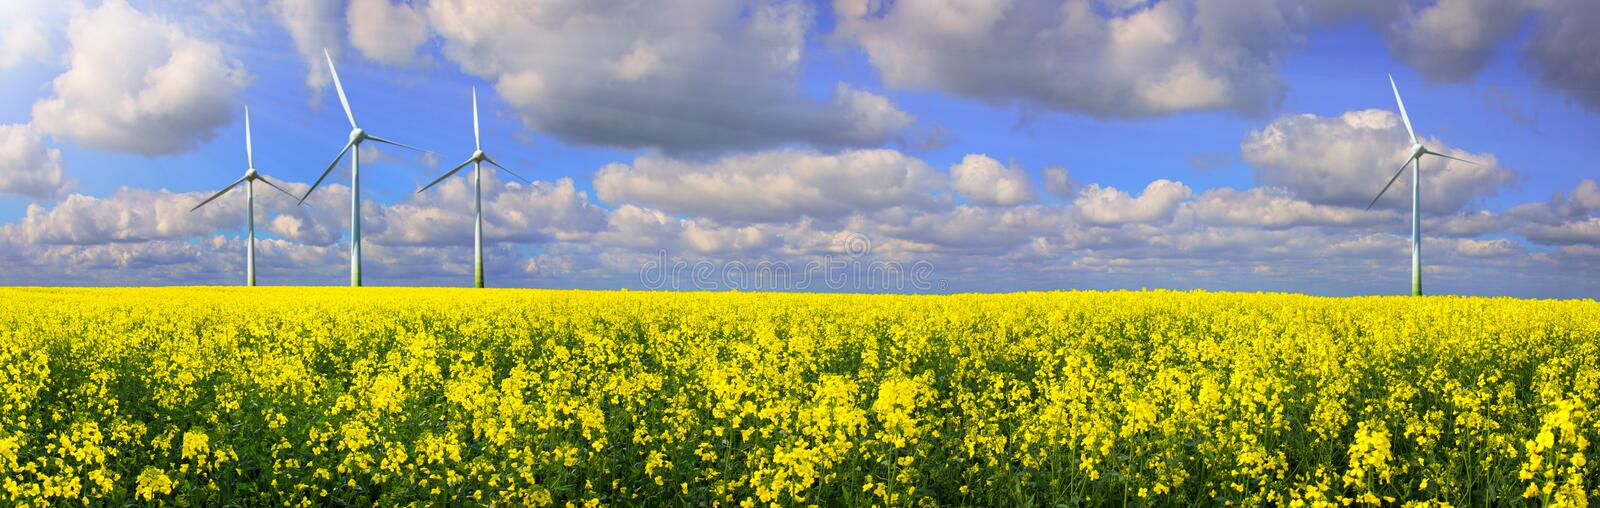 Rapeseed Field With Wind farm - Renewable Energy Panorama stock photography